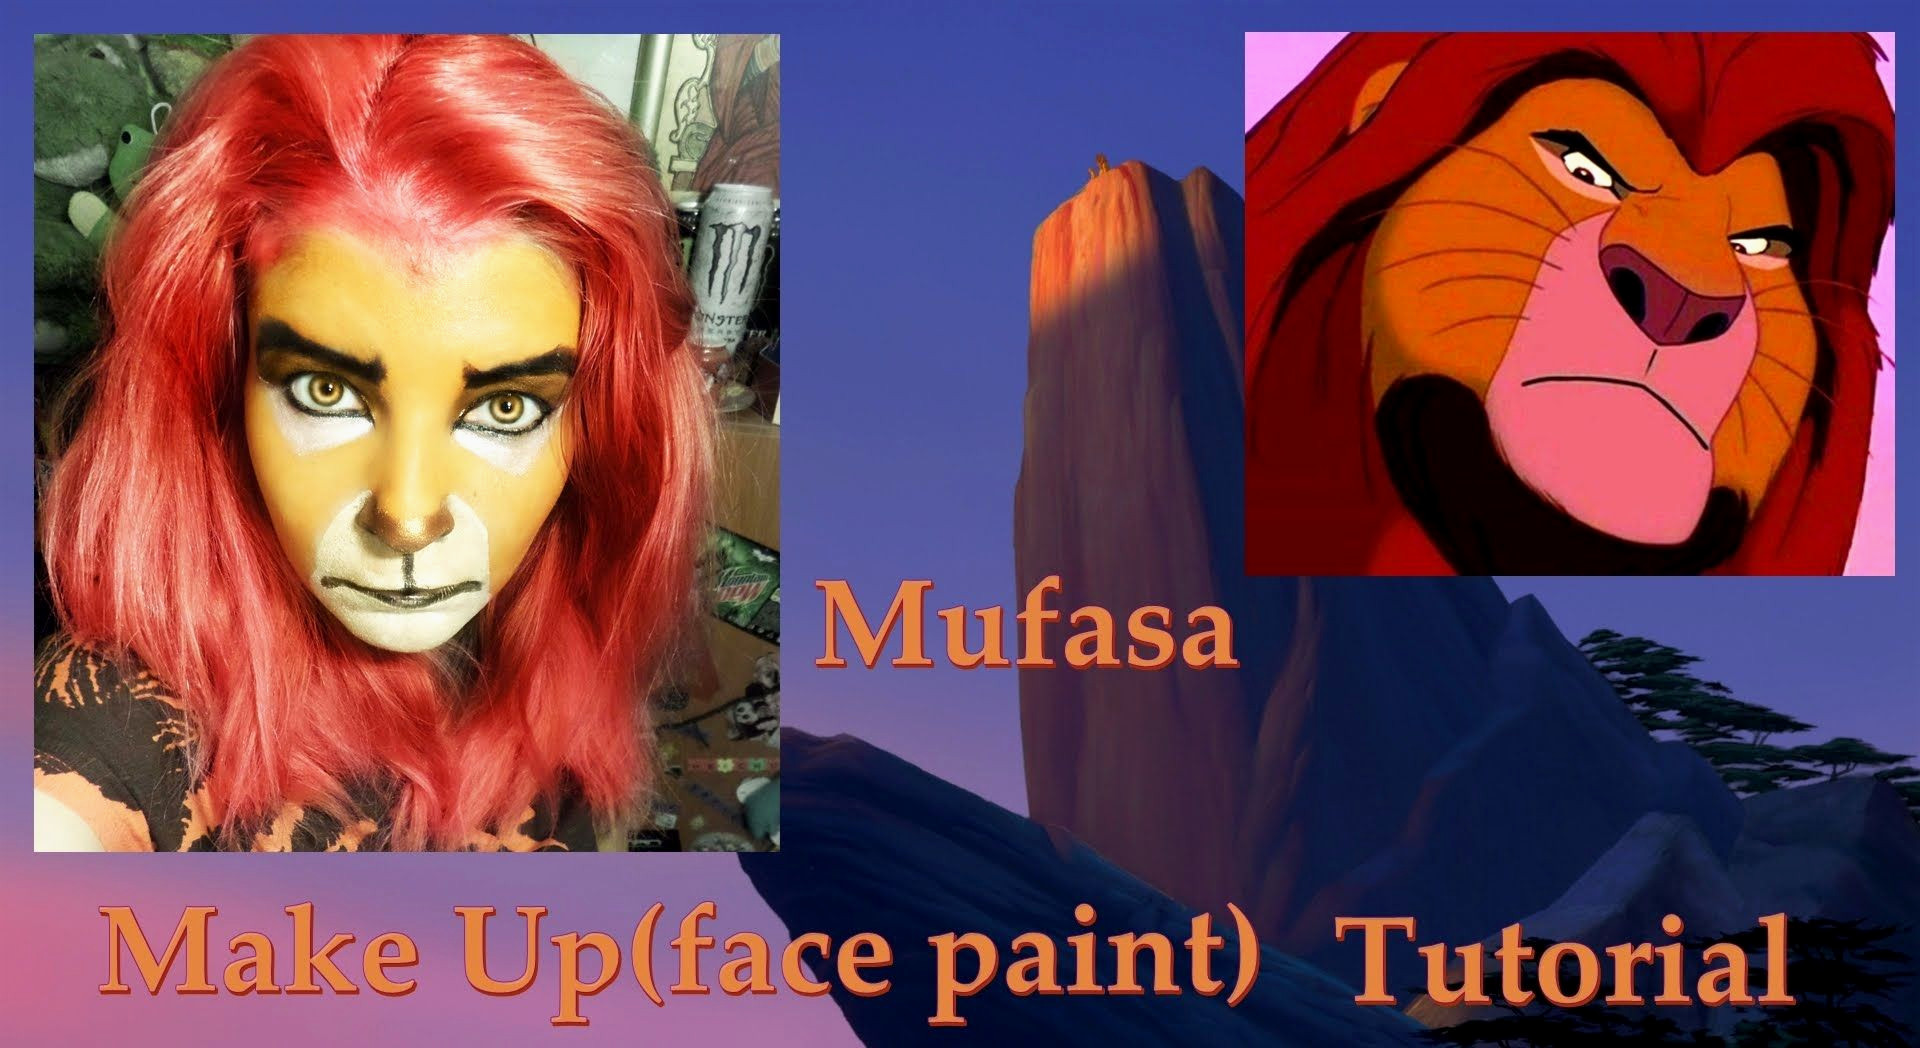 Mufasa Make Up face paint Tutorial